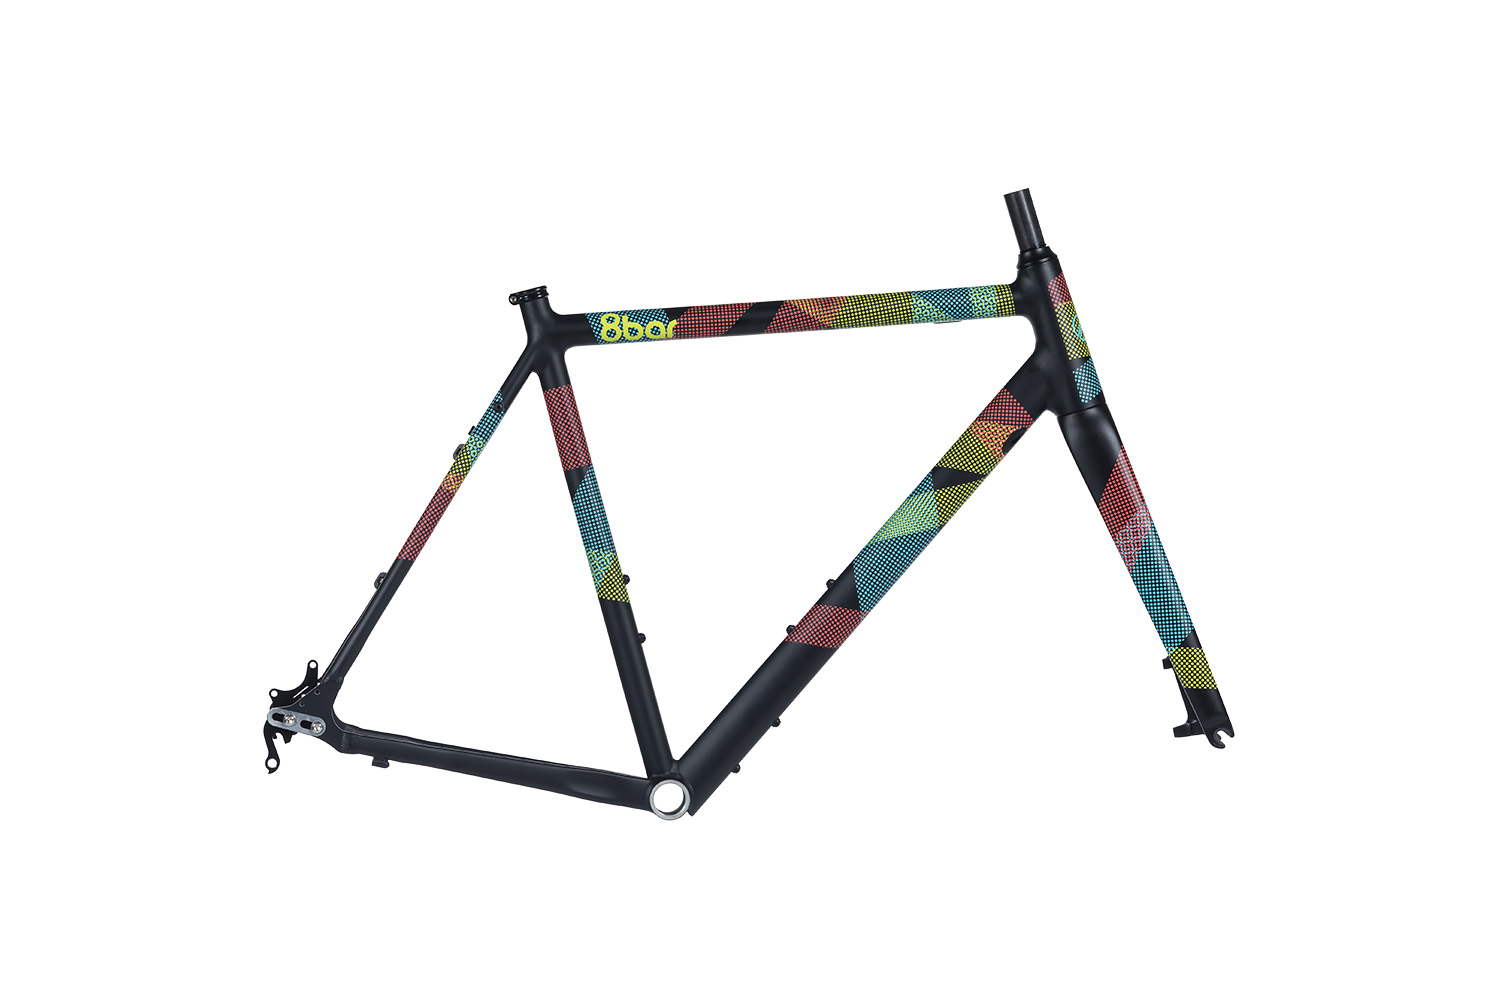 8bar frameset mitte team edition road bike lr